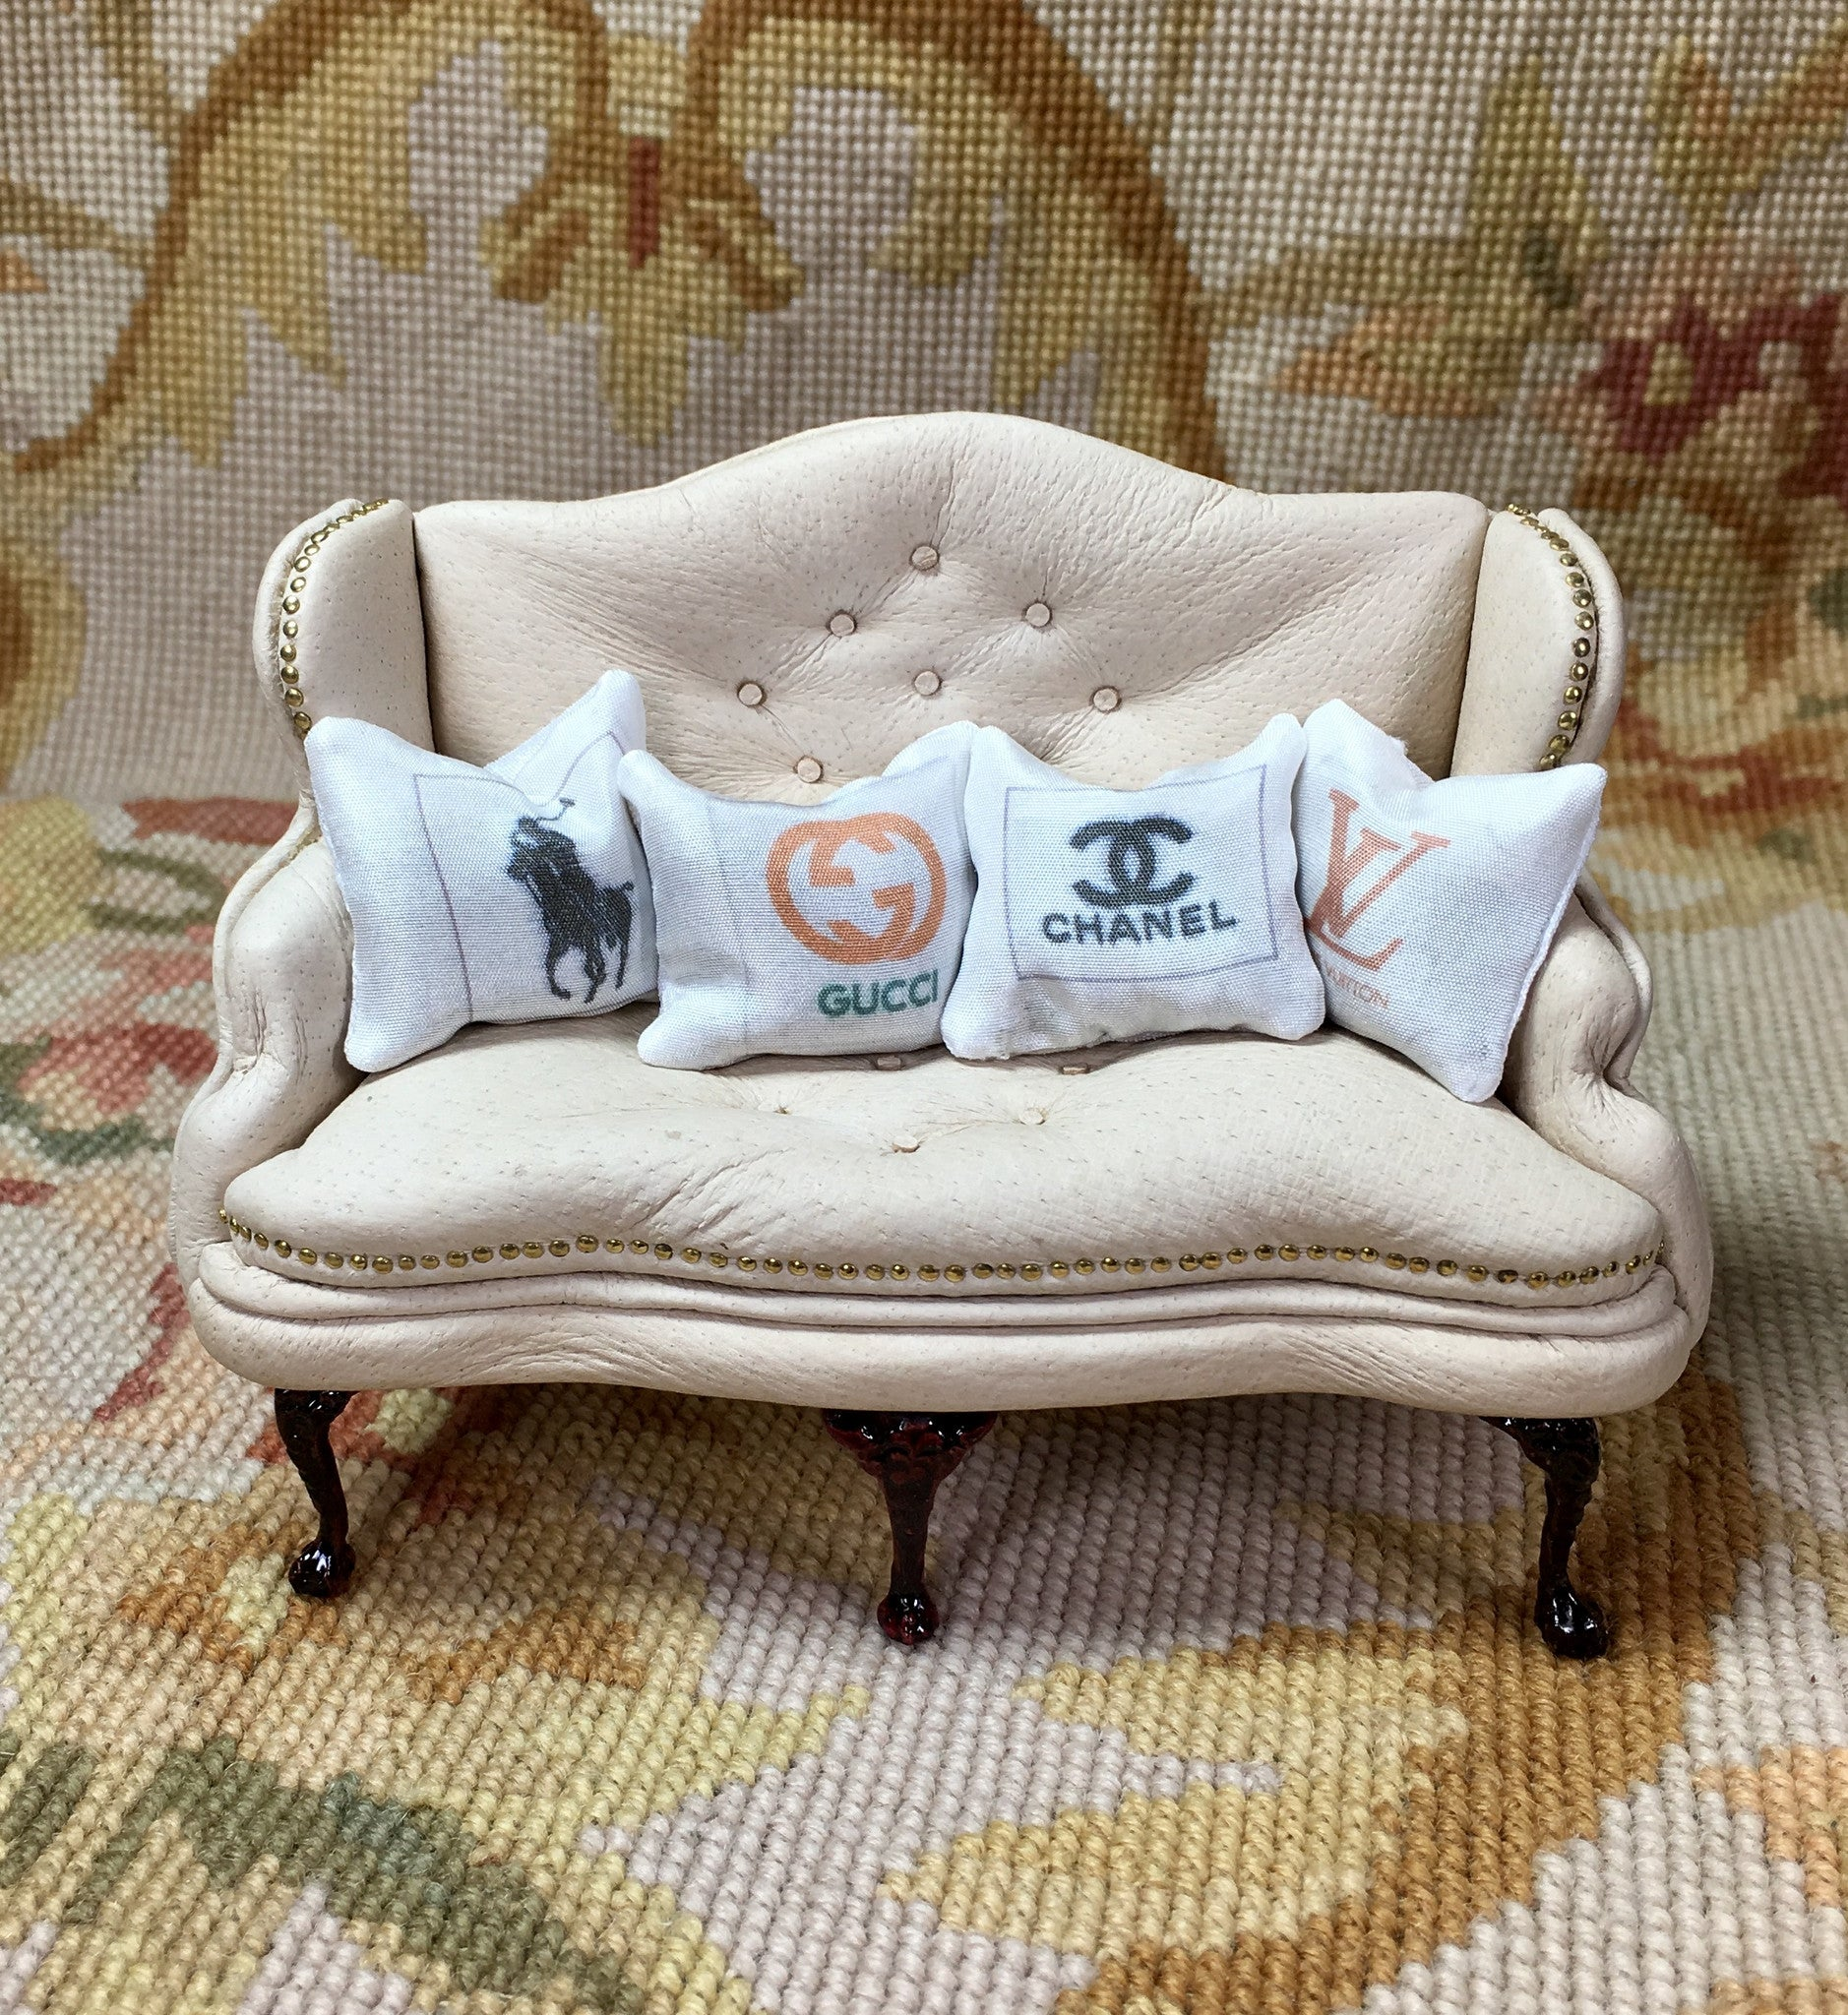 Pillow Cushion Designer 1:12 Dollhouse Miniature